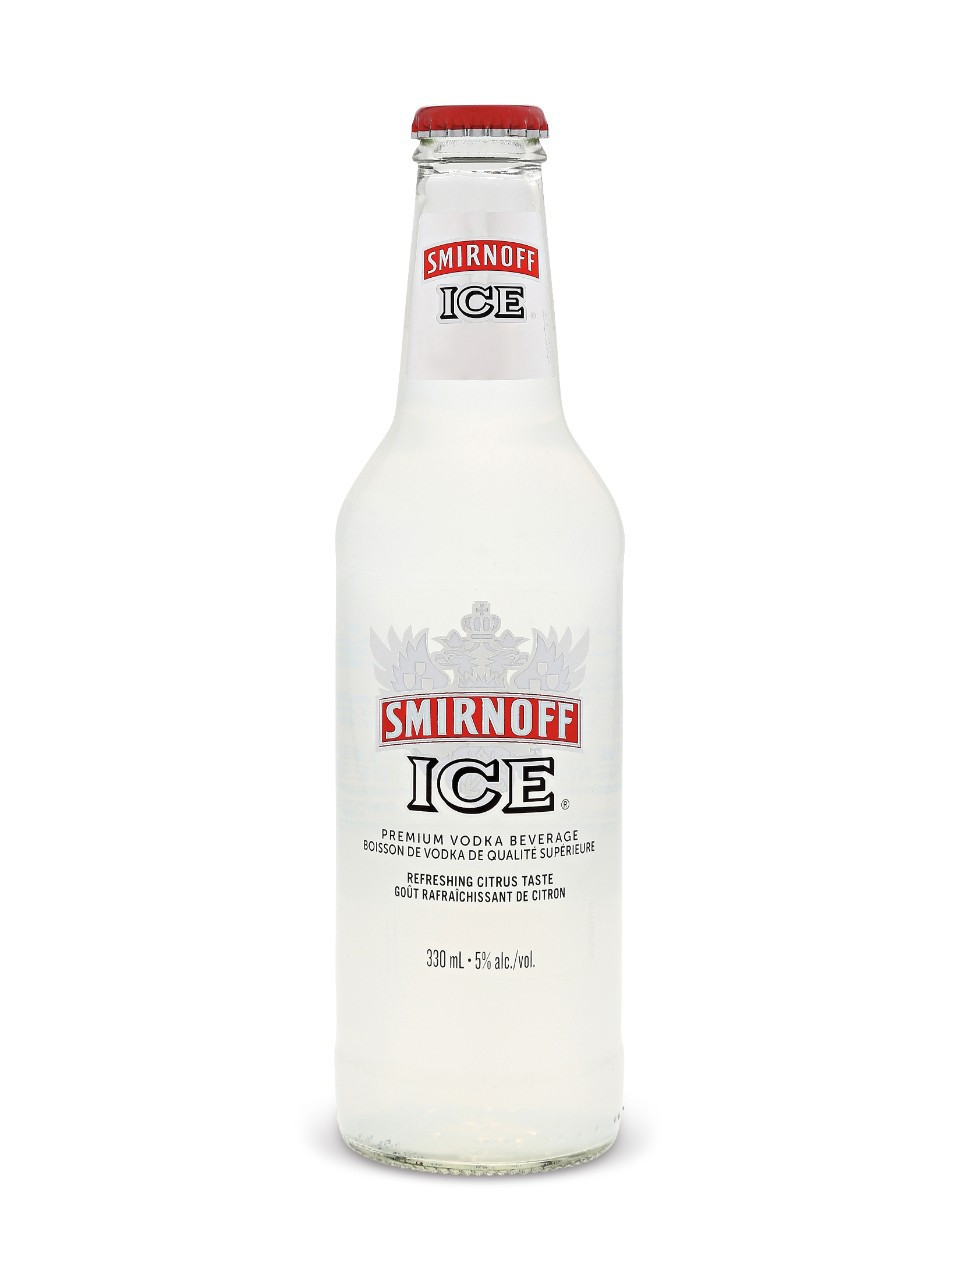 Smirnoff - Original 12oz - 6 Bottles